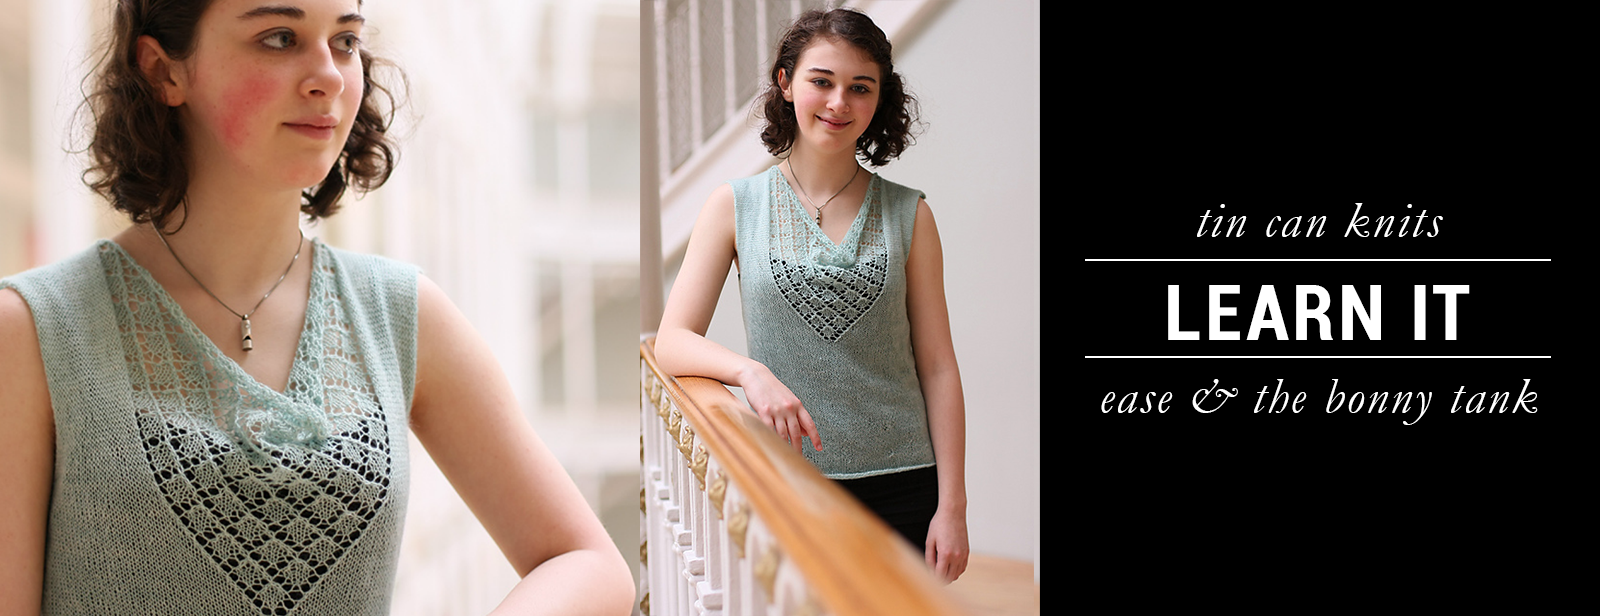 Ease & the Bonny Tank by Tin Can Knits #tttkal